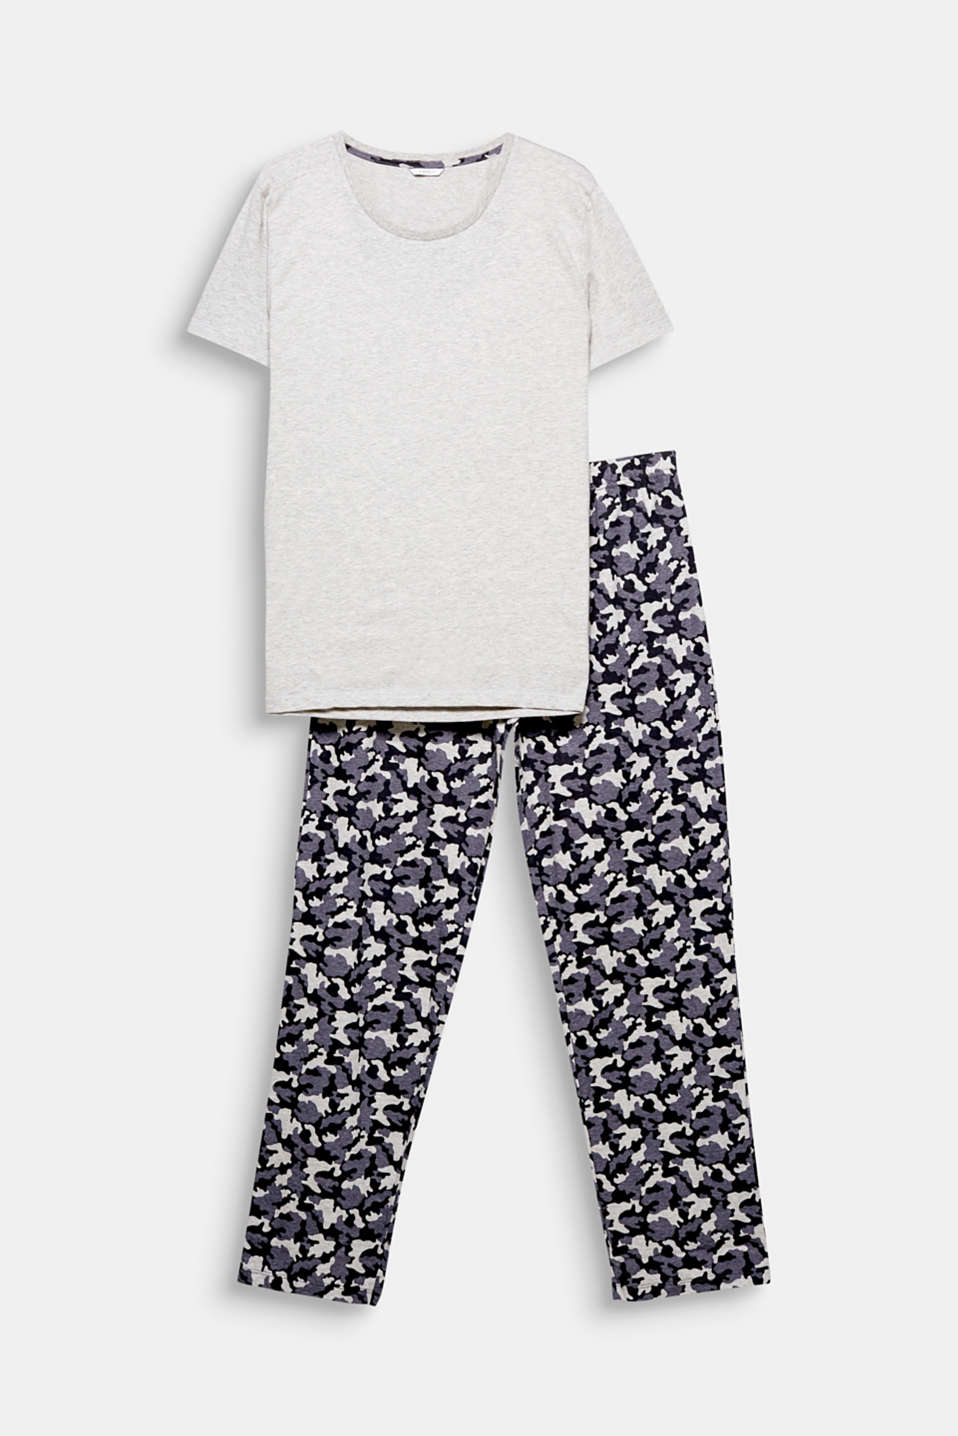 These lightweight jersey pyjamas with casual camouflage bottoms combine comfort and a cool style!